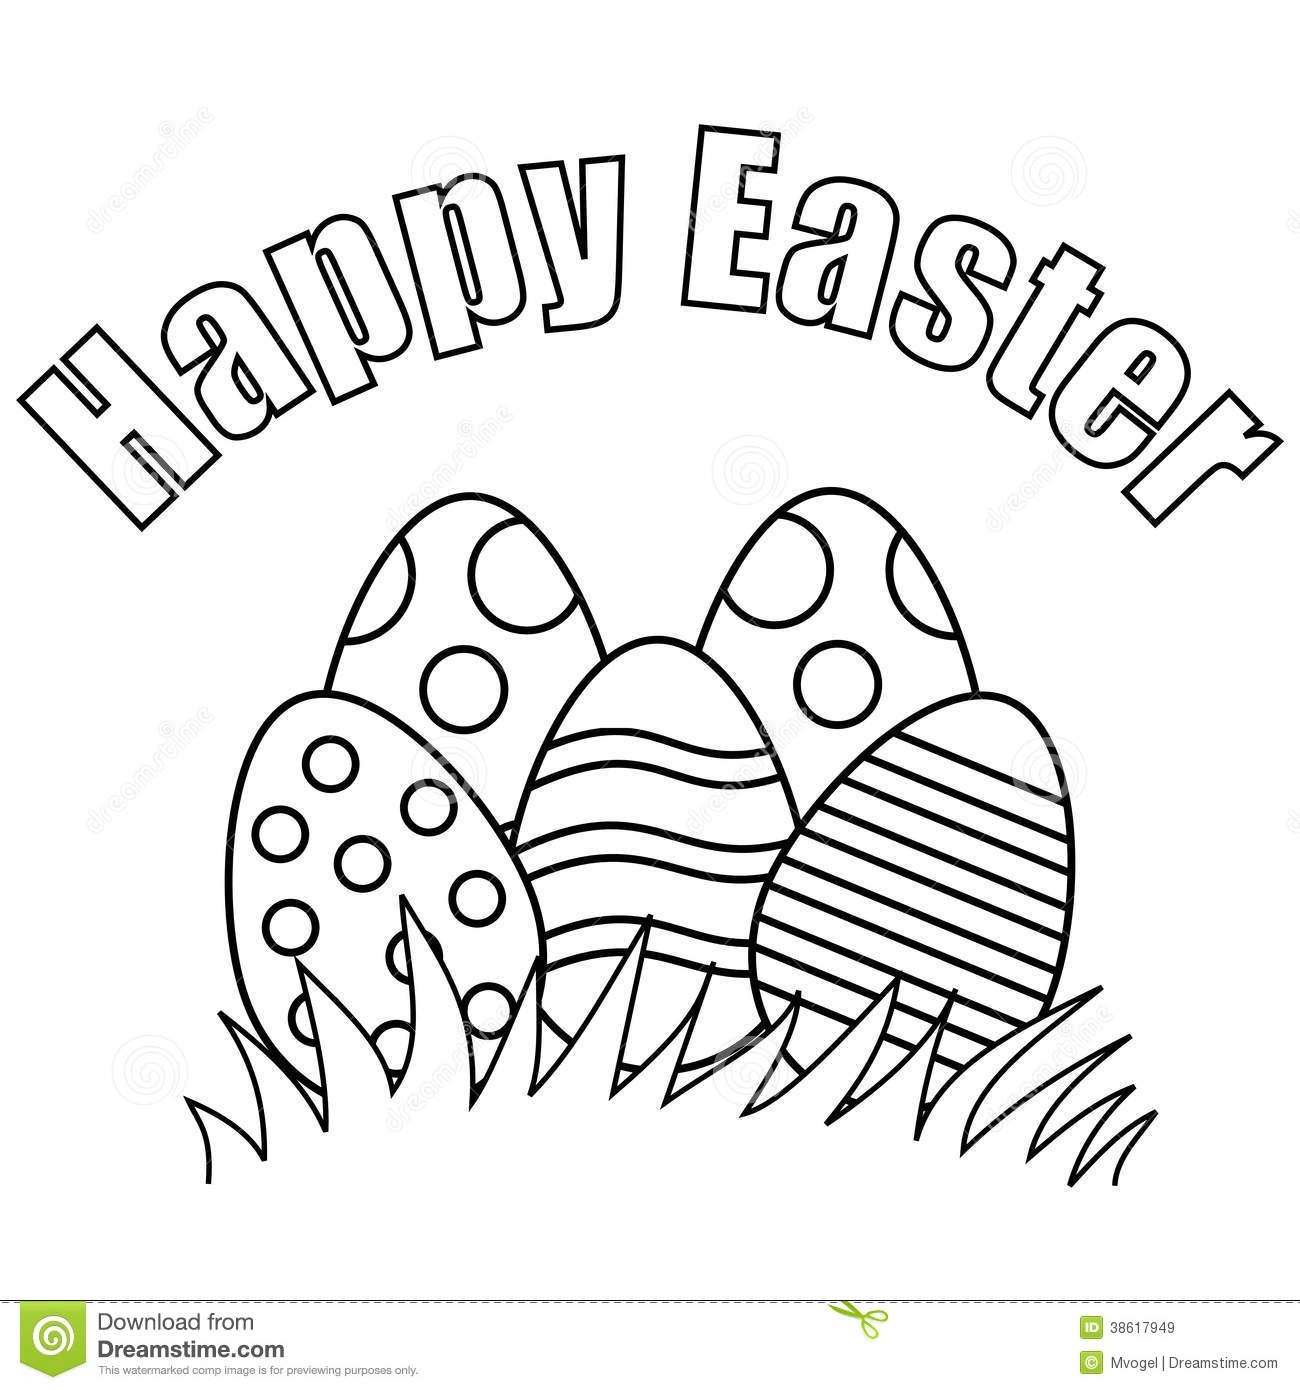 Happy Easter Royalty Free Stock Images - Image: 38617949